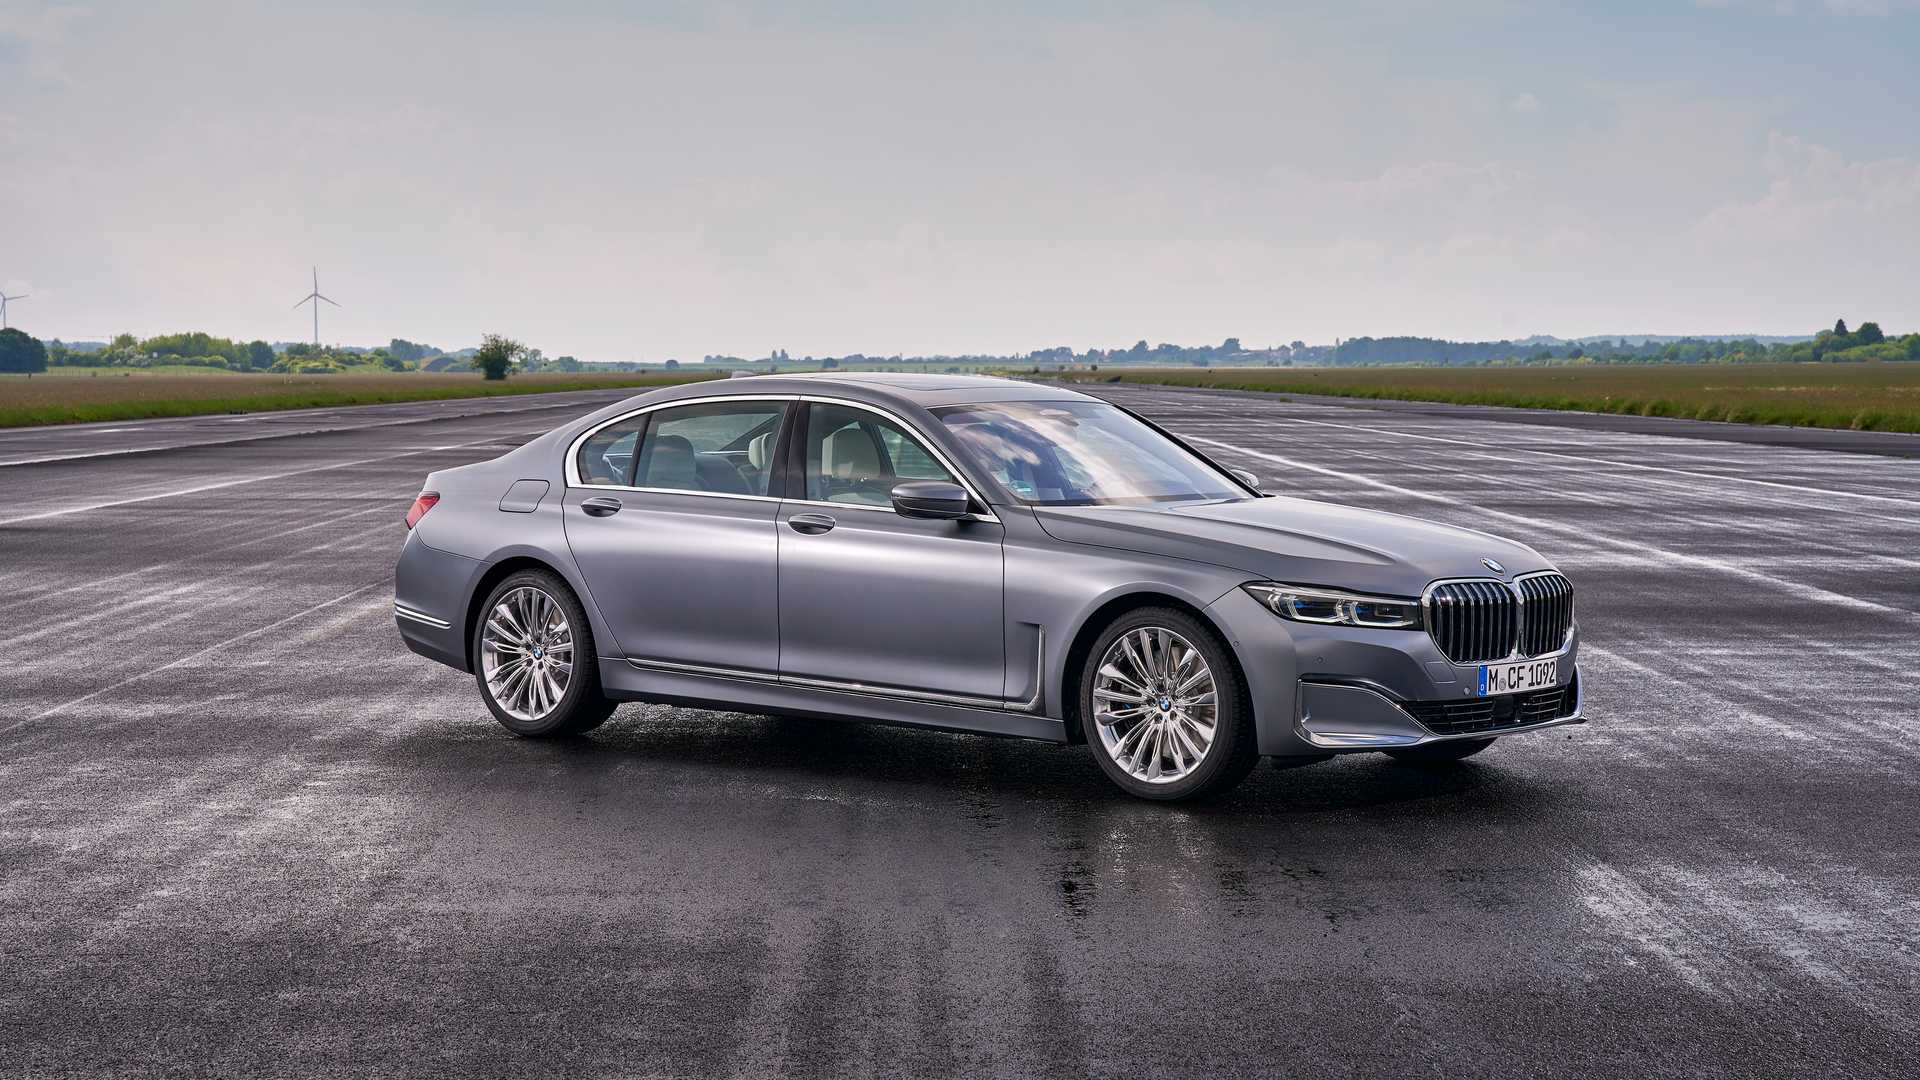 new-inline-six-diesel-engines-for-bmw-7-series-5-1